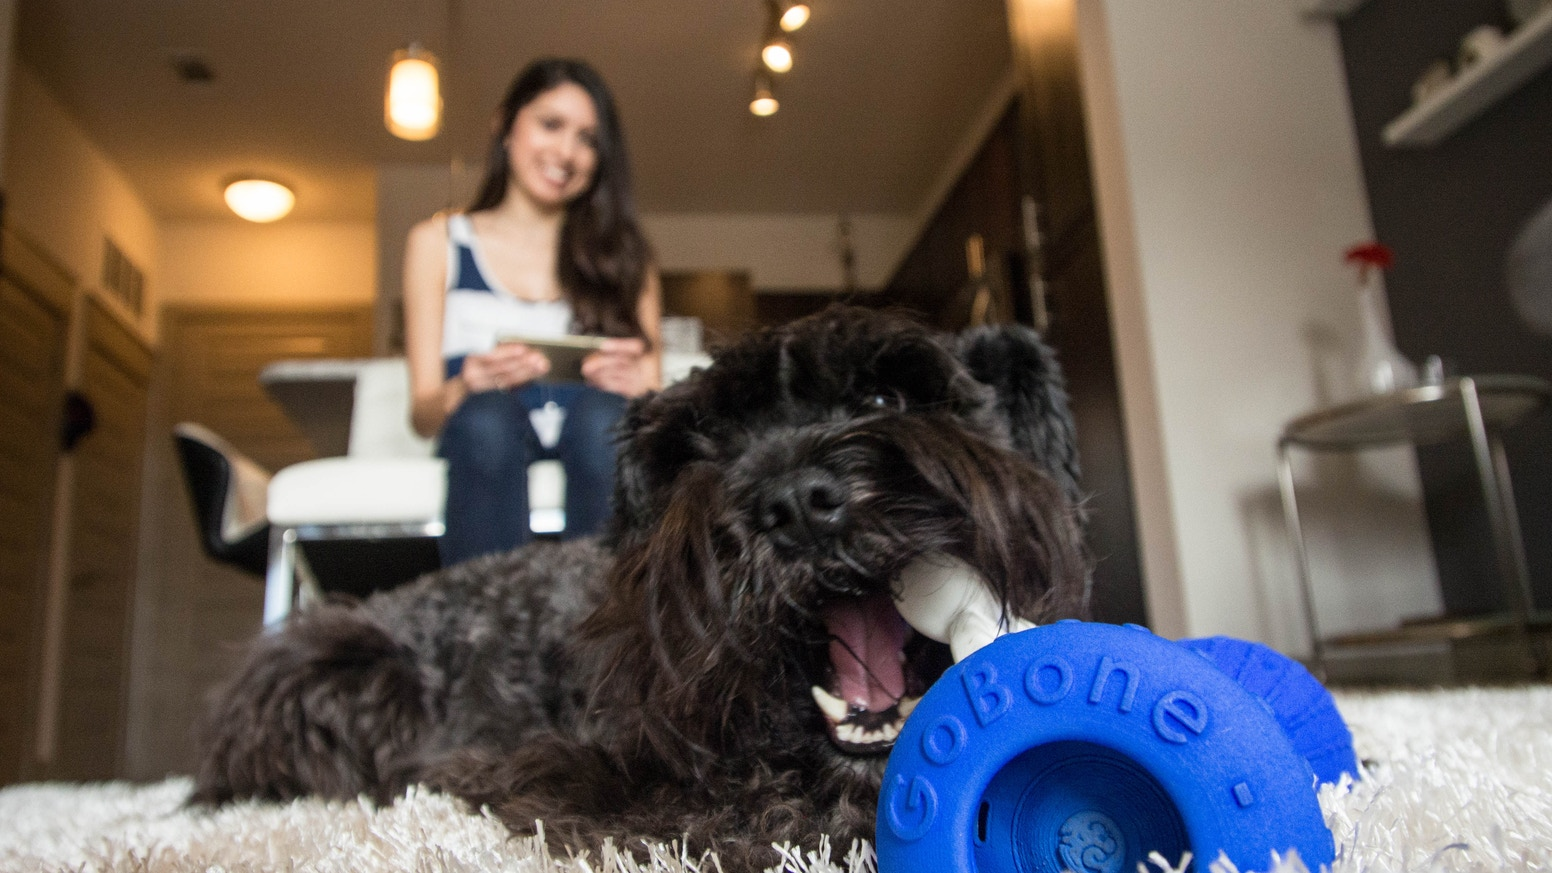 GoBone automatically entertains your dog while you're busy and opens up a whole new world of play when you're together.